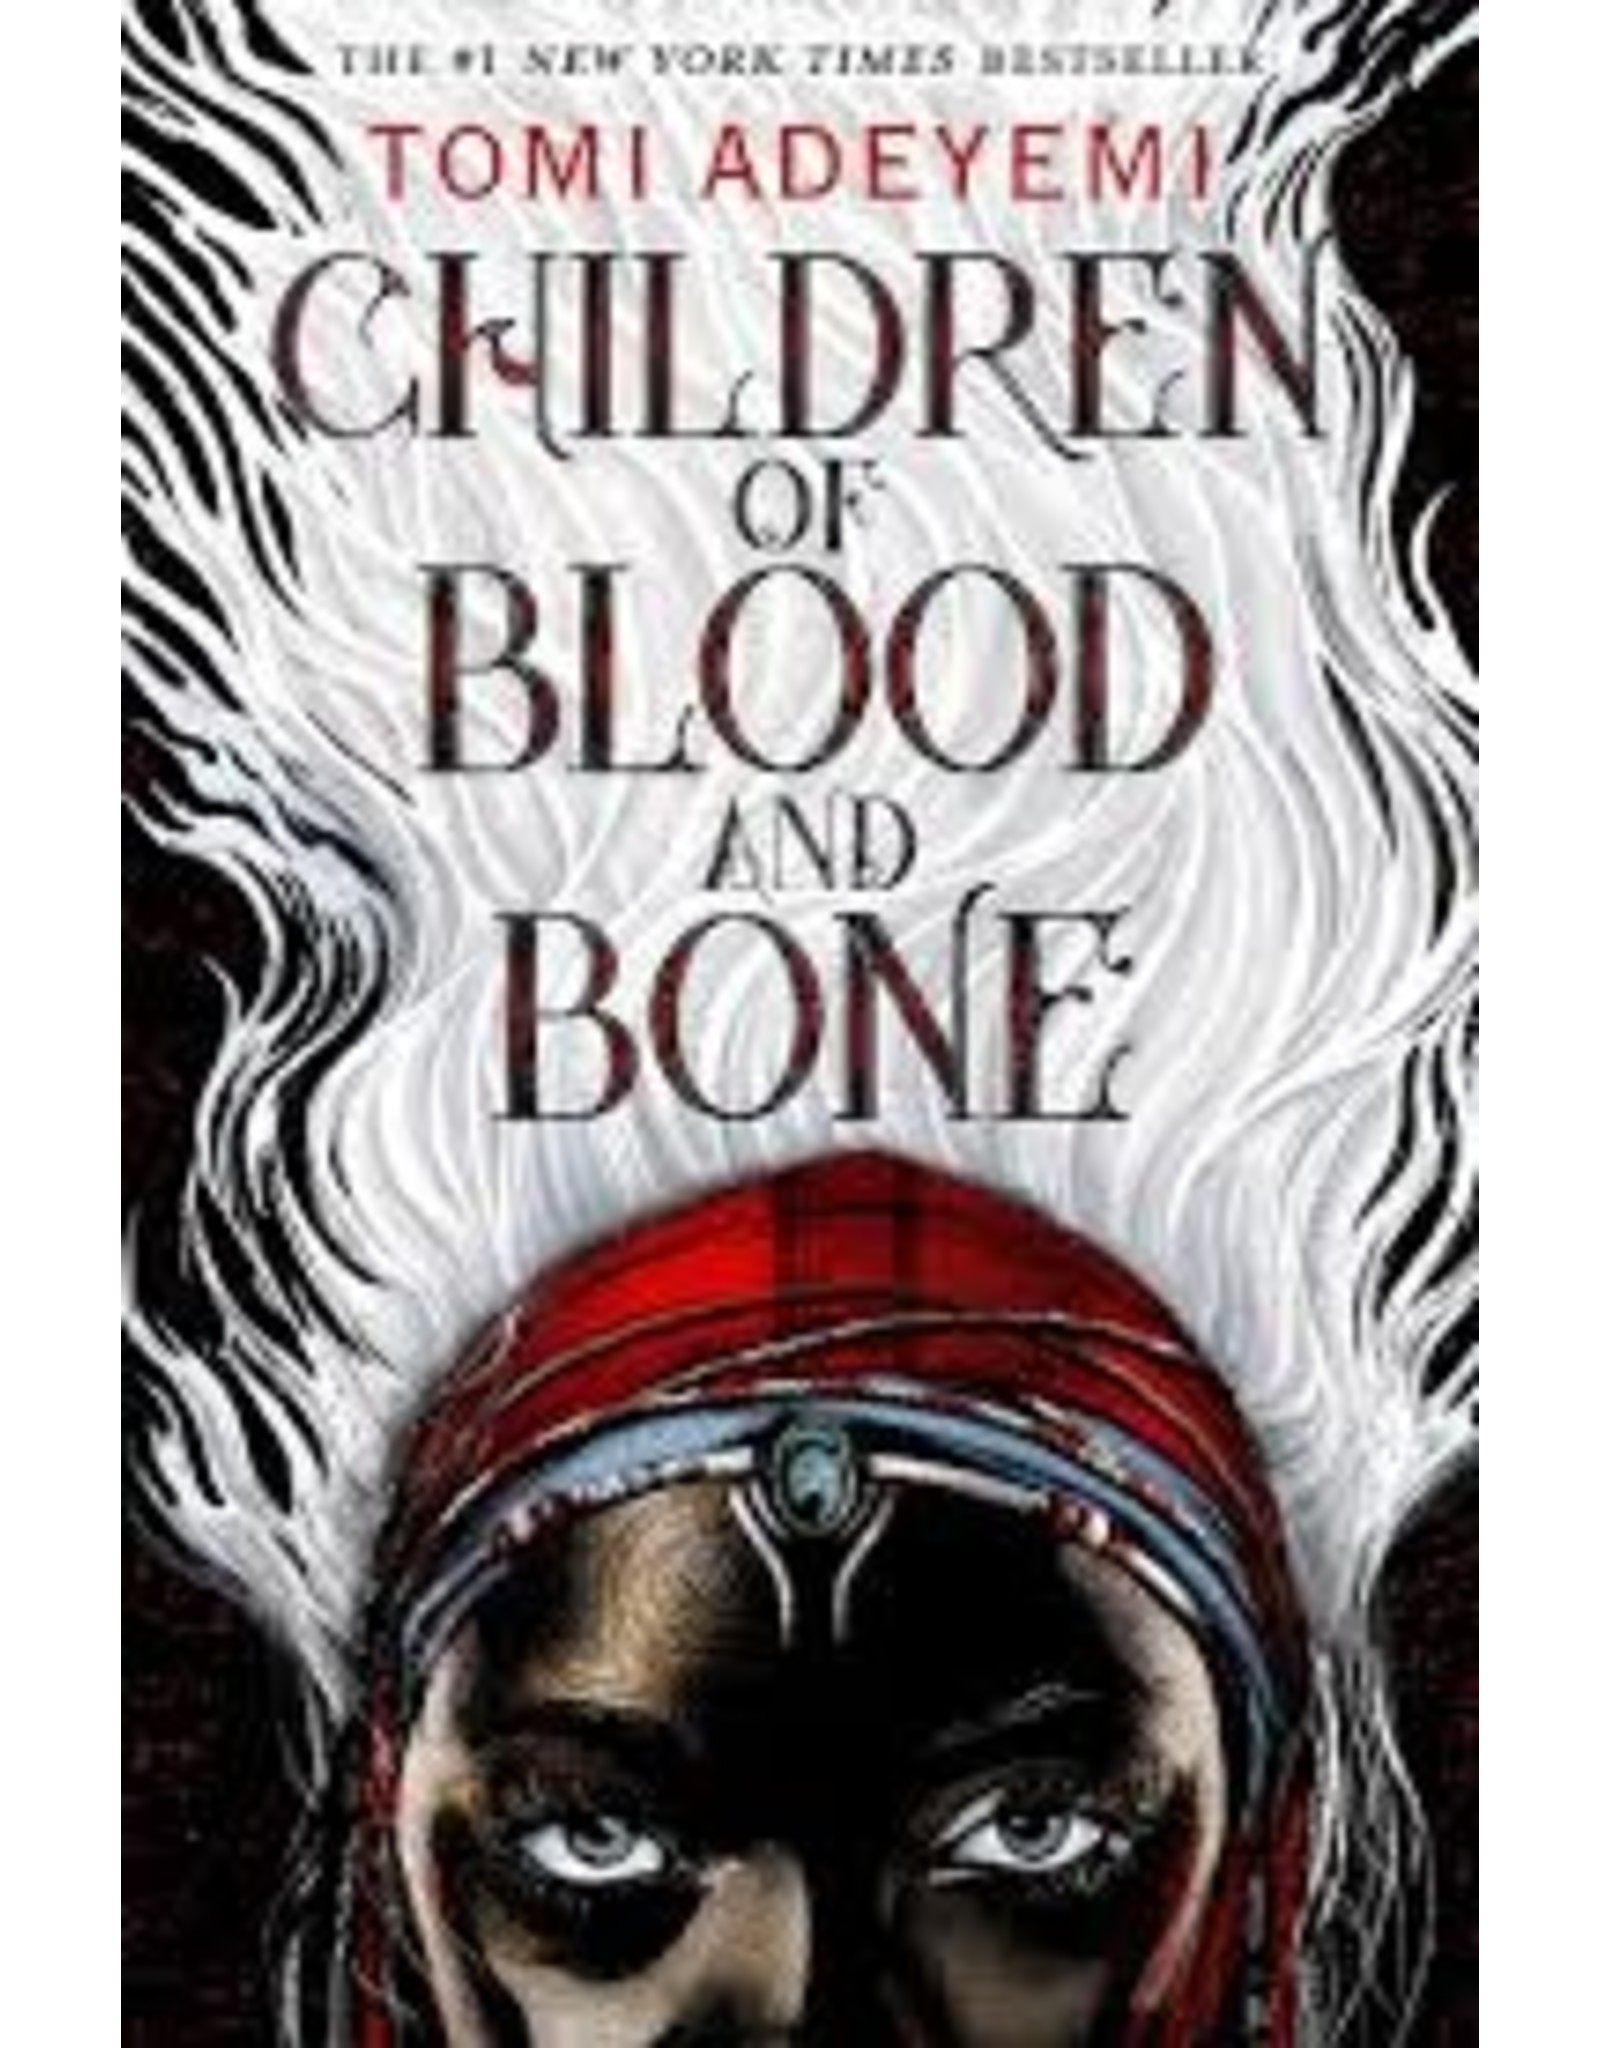 Books Children of Blood and Bone,Tomi Adeyemi